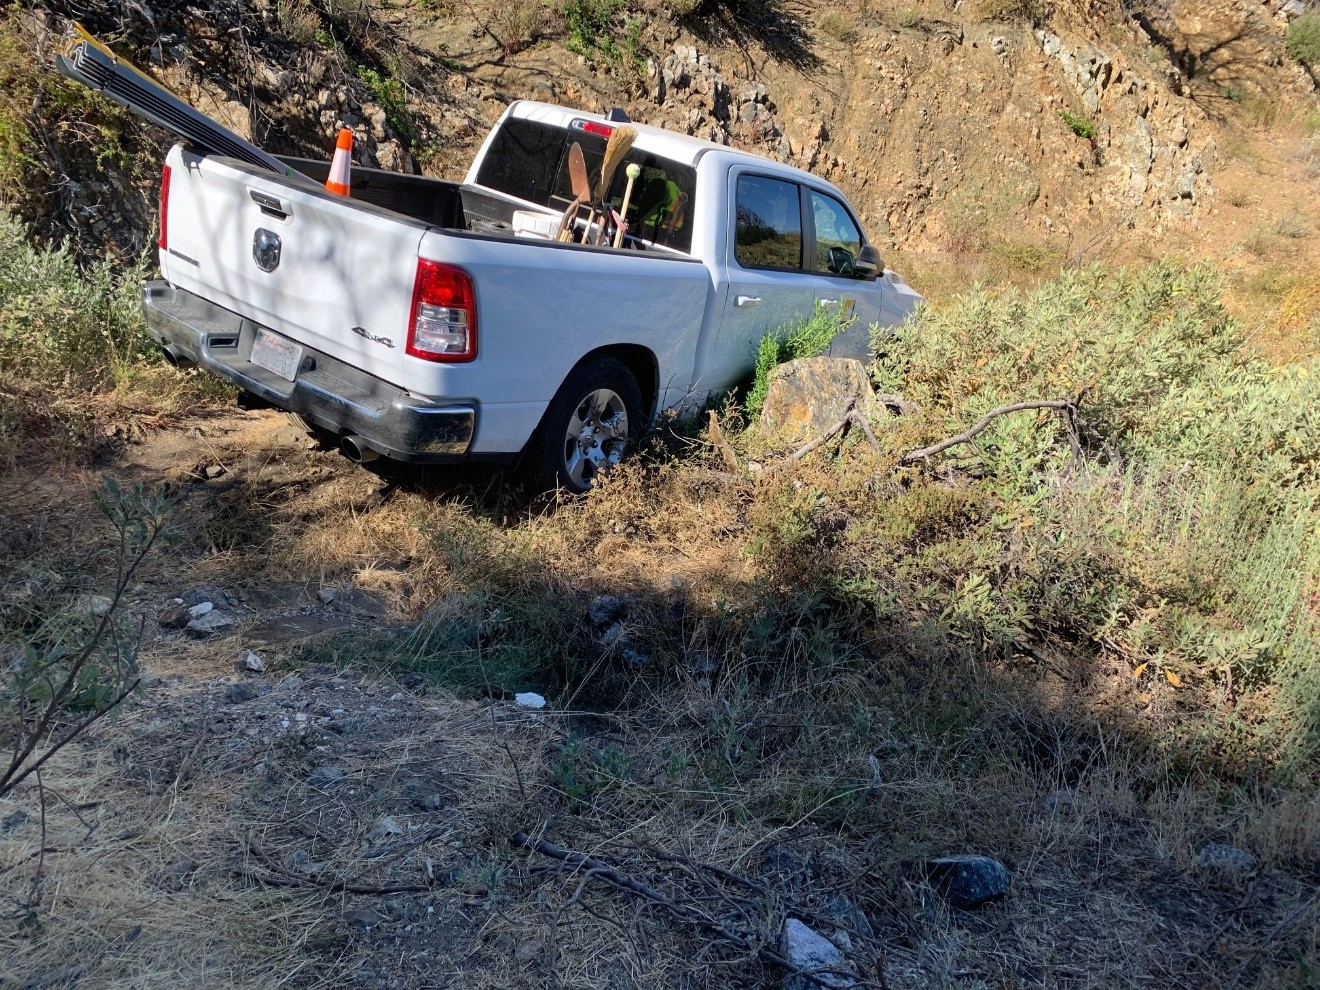 An SCE biologist was asked to respond to a crew truck that was stuck on a dirt road in one of the local forests.